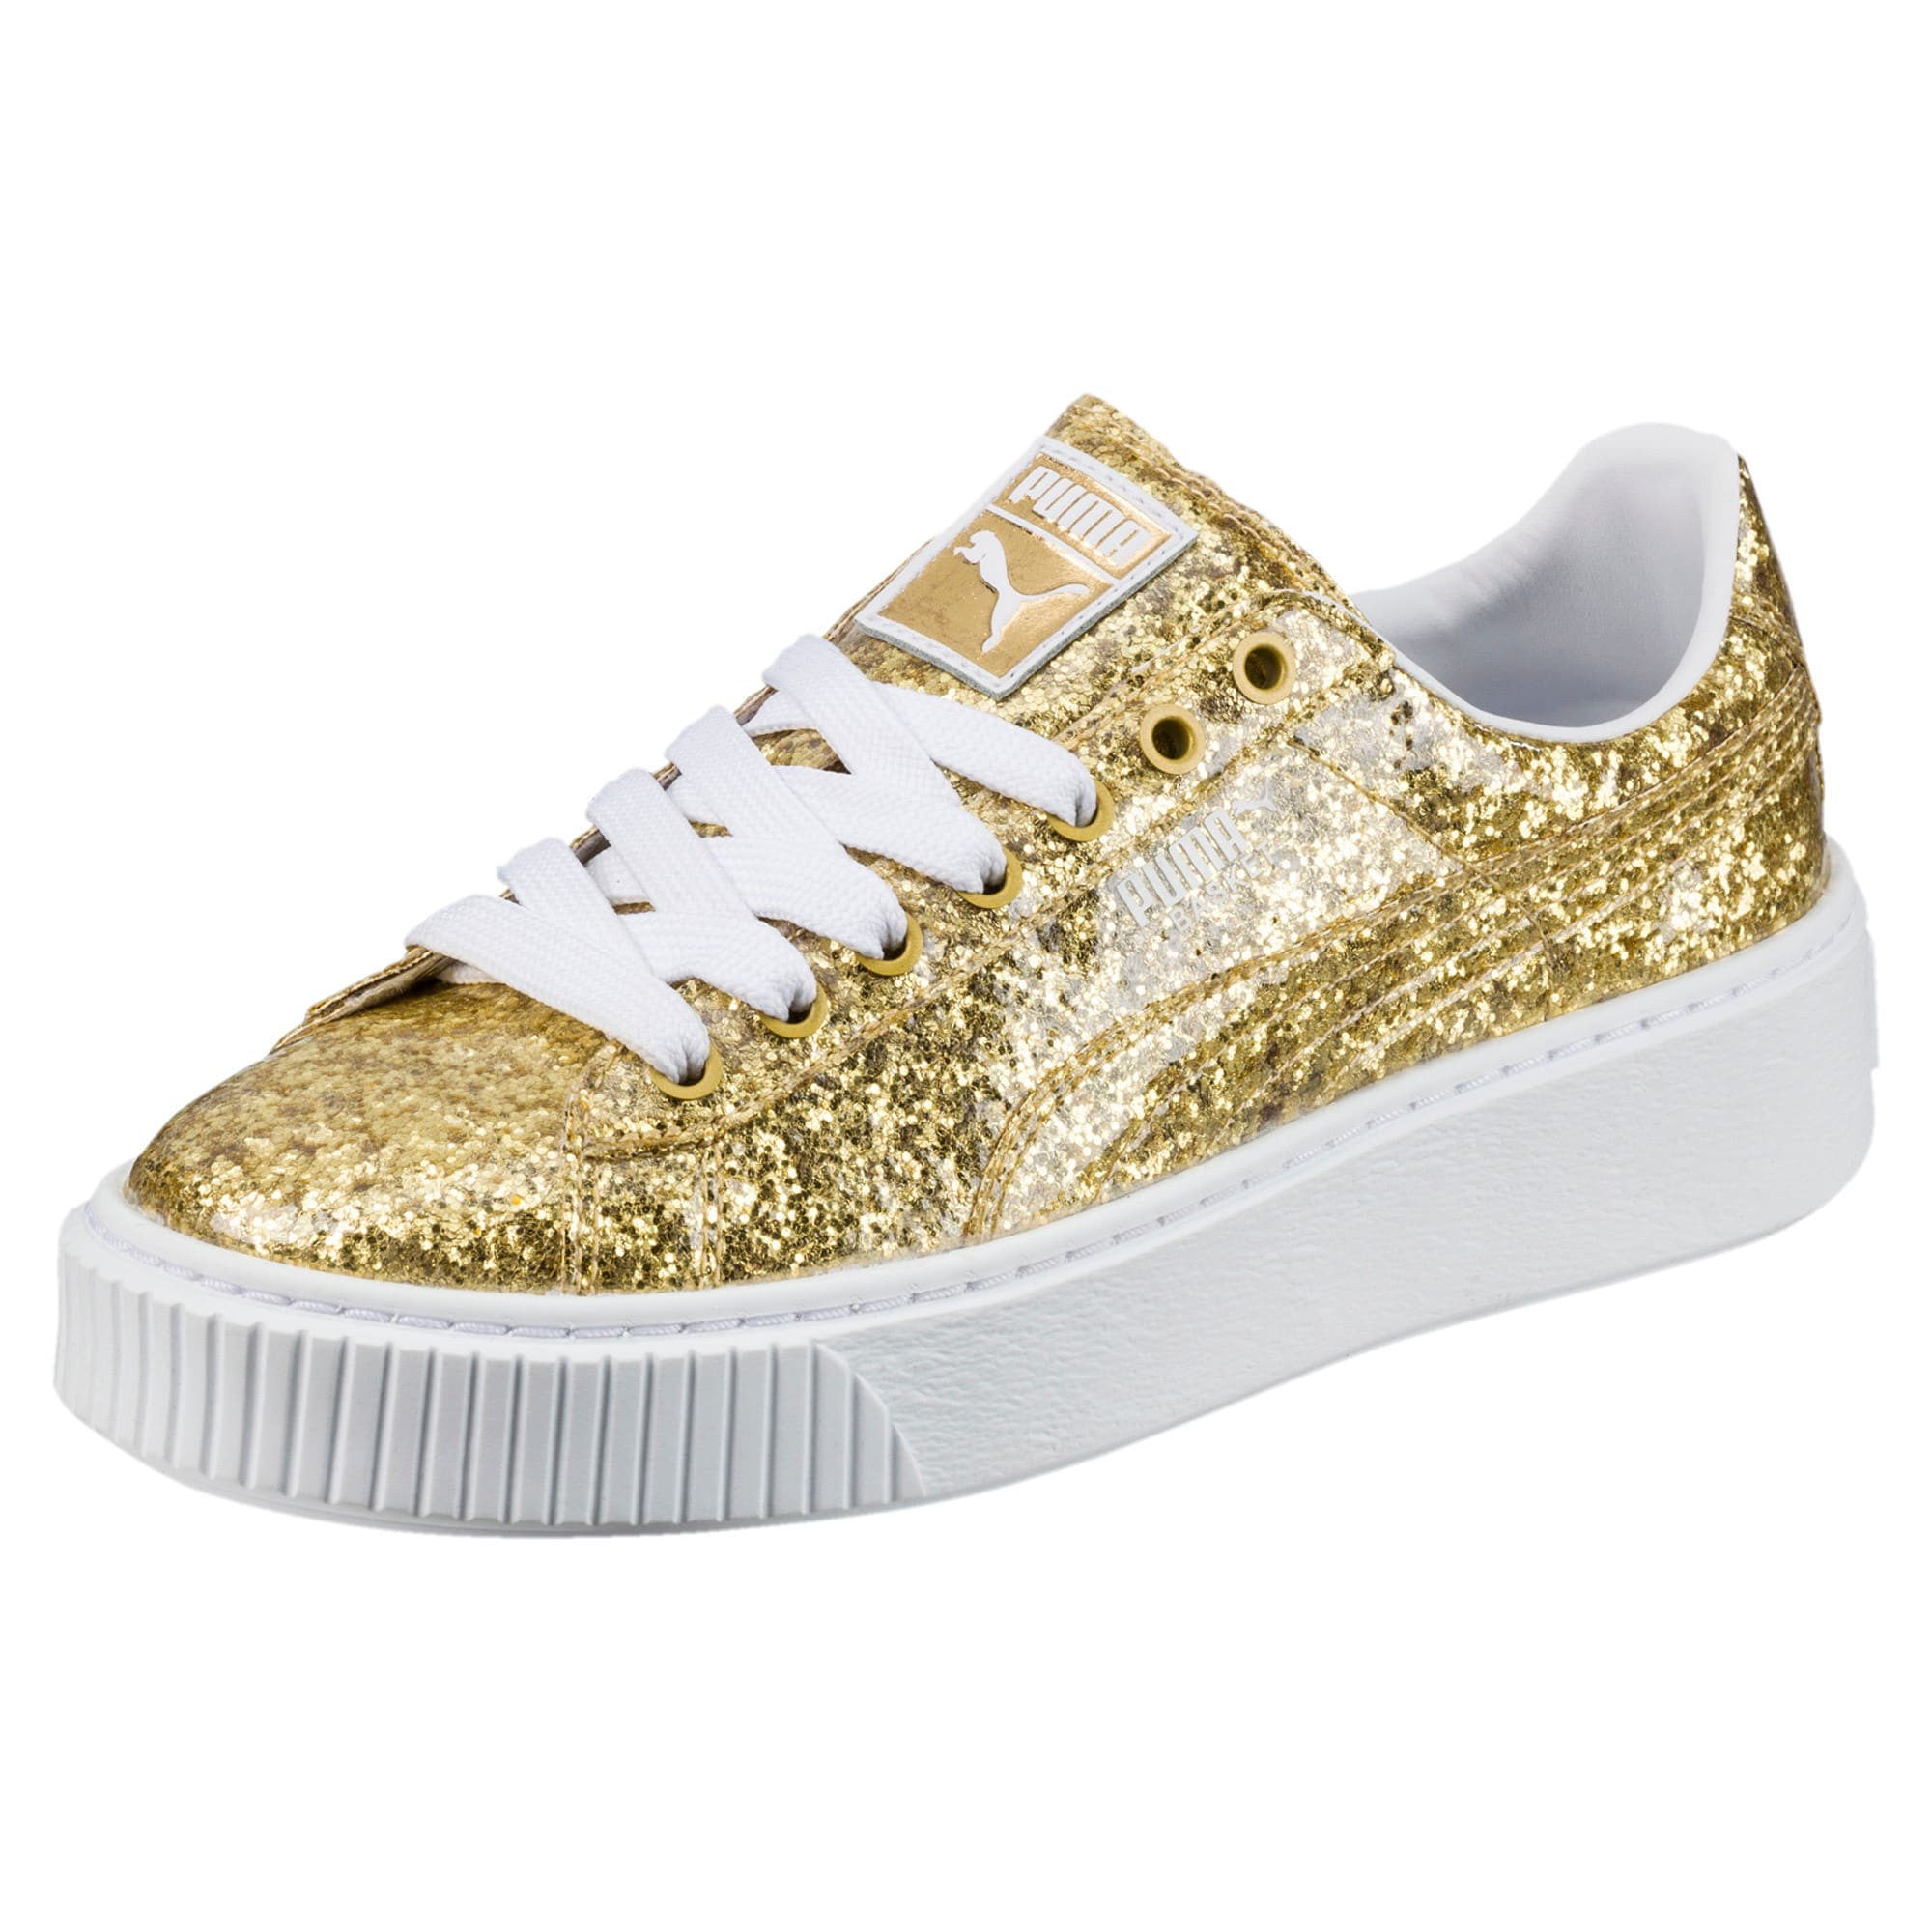 Details about Puma Bling sneakers. Glitter leather upper and platform sole. Women's 9.5